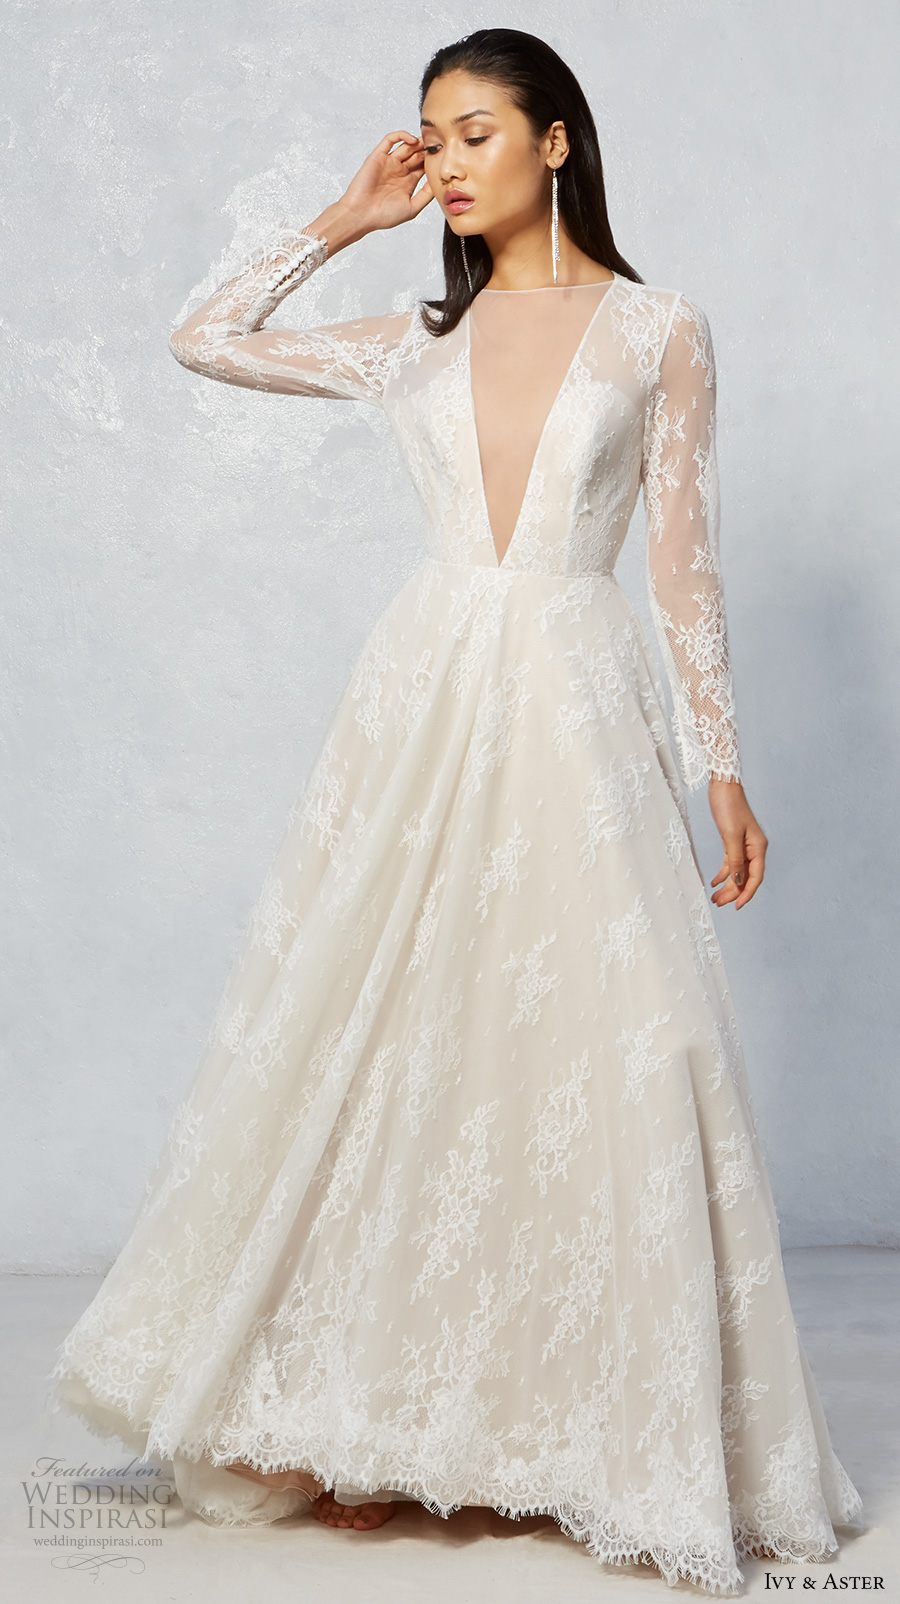 ivy aster fall 2017 bridal lace long sleeves illusion jewel neck deep v neckline full embroidered romantic ivory color a  line wedding dress keyhole back chapel train (jay) mv